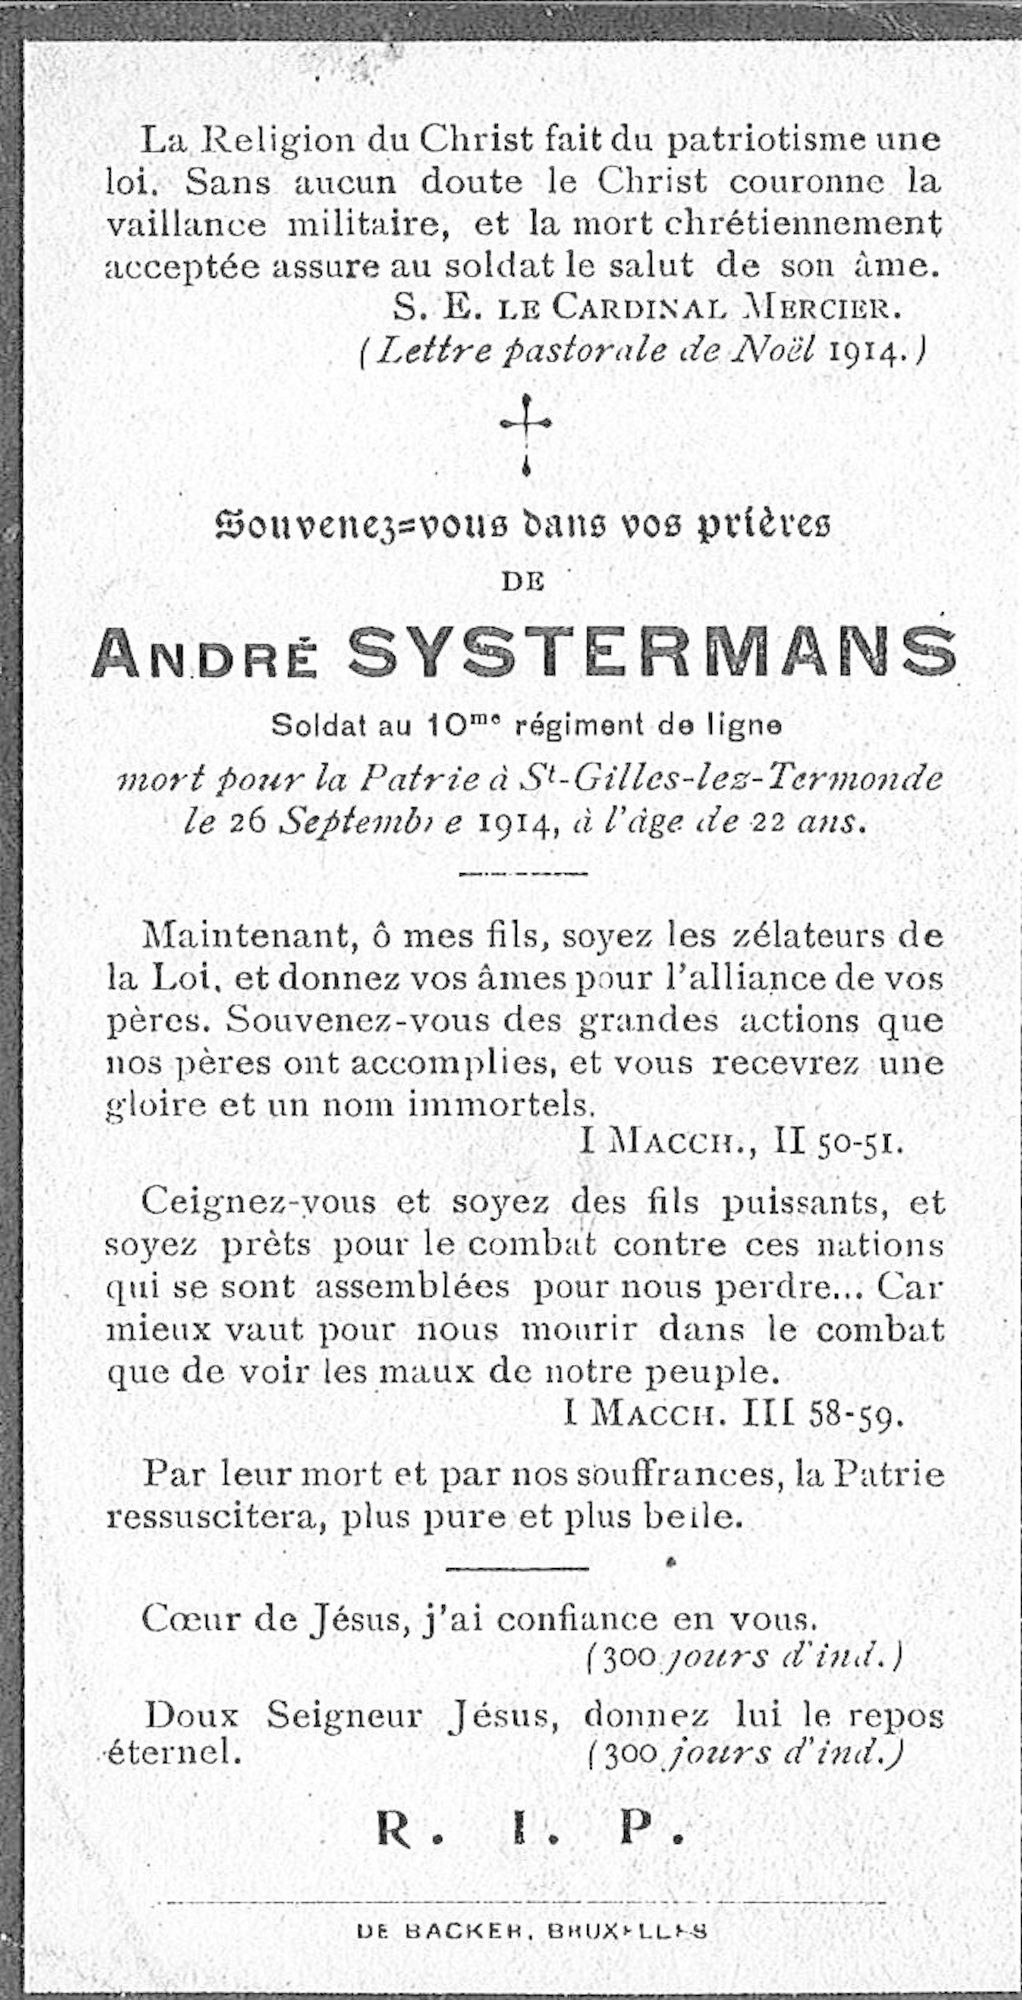 André Systermans